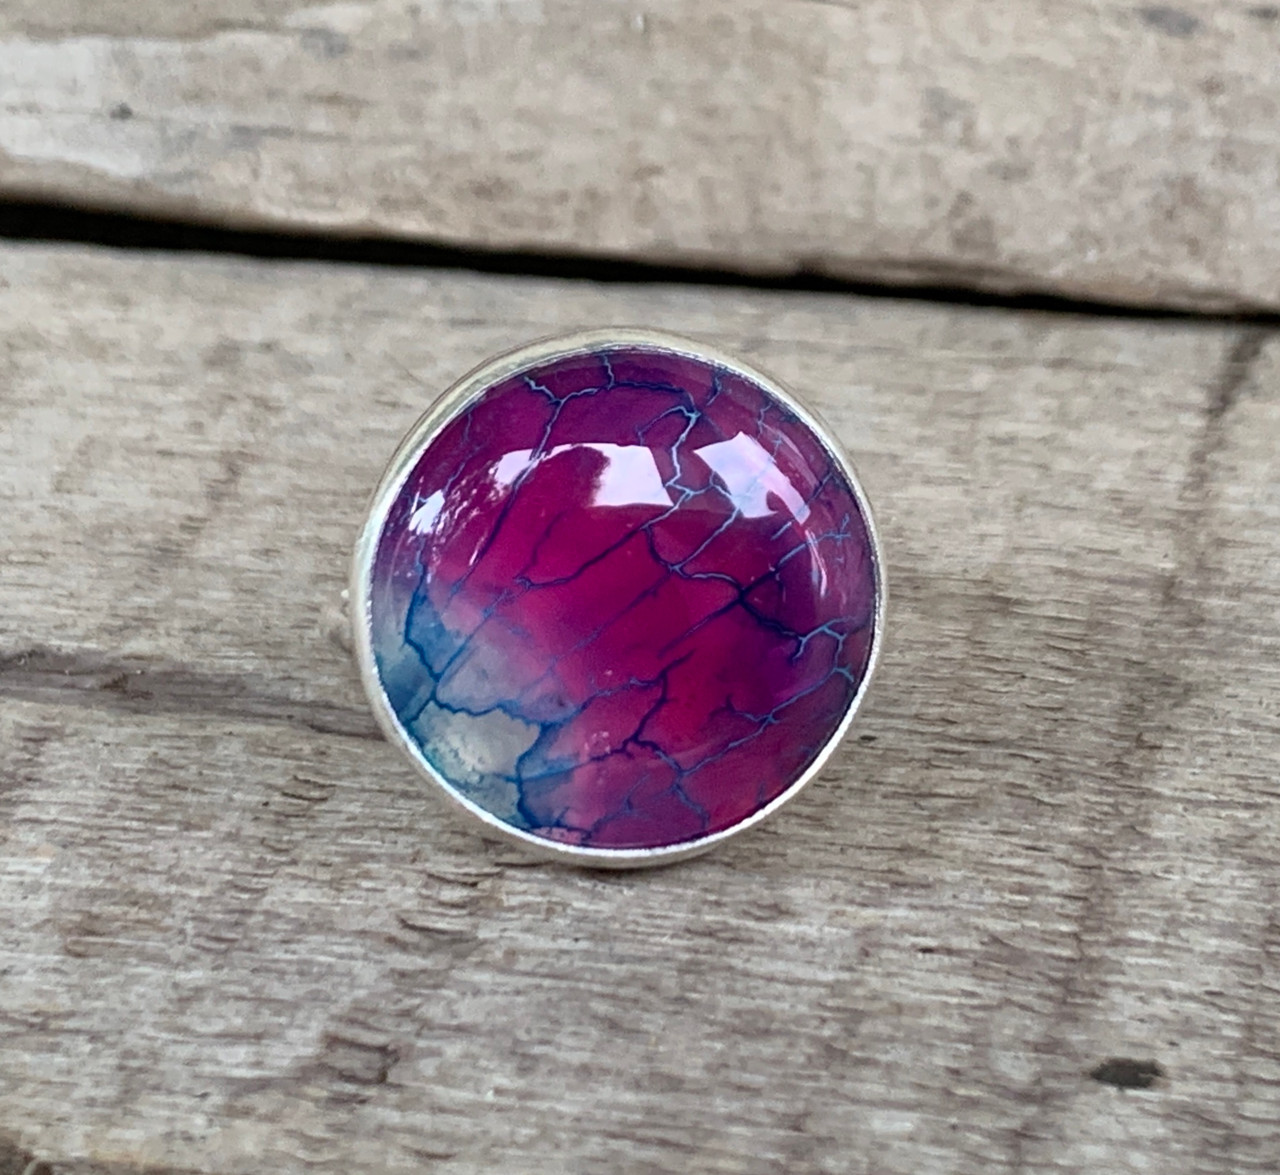 Violet Agate Ring Violet Dragon Vein Agate Ring Violet Agate Jewelry Wire Wrapped Agate Ring Agate Ring Crystal Wire Rings Boho Ring